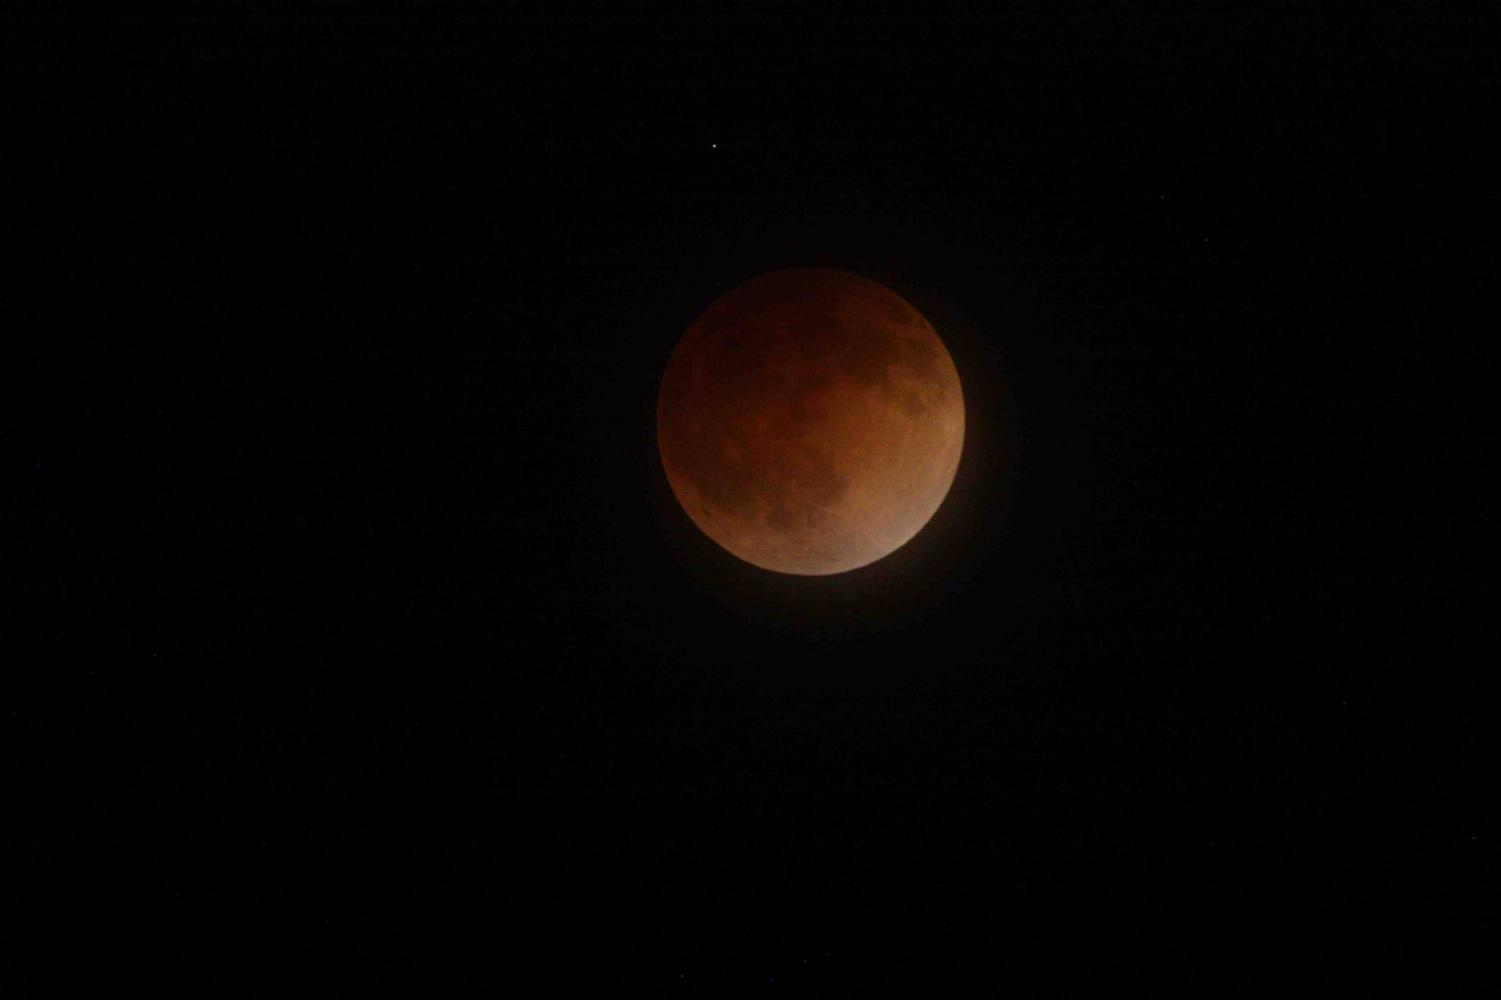 blood moon today in florida - photo #15